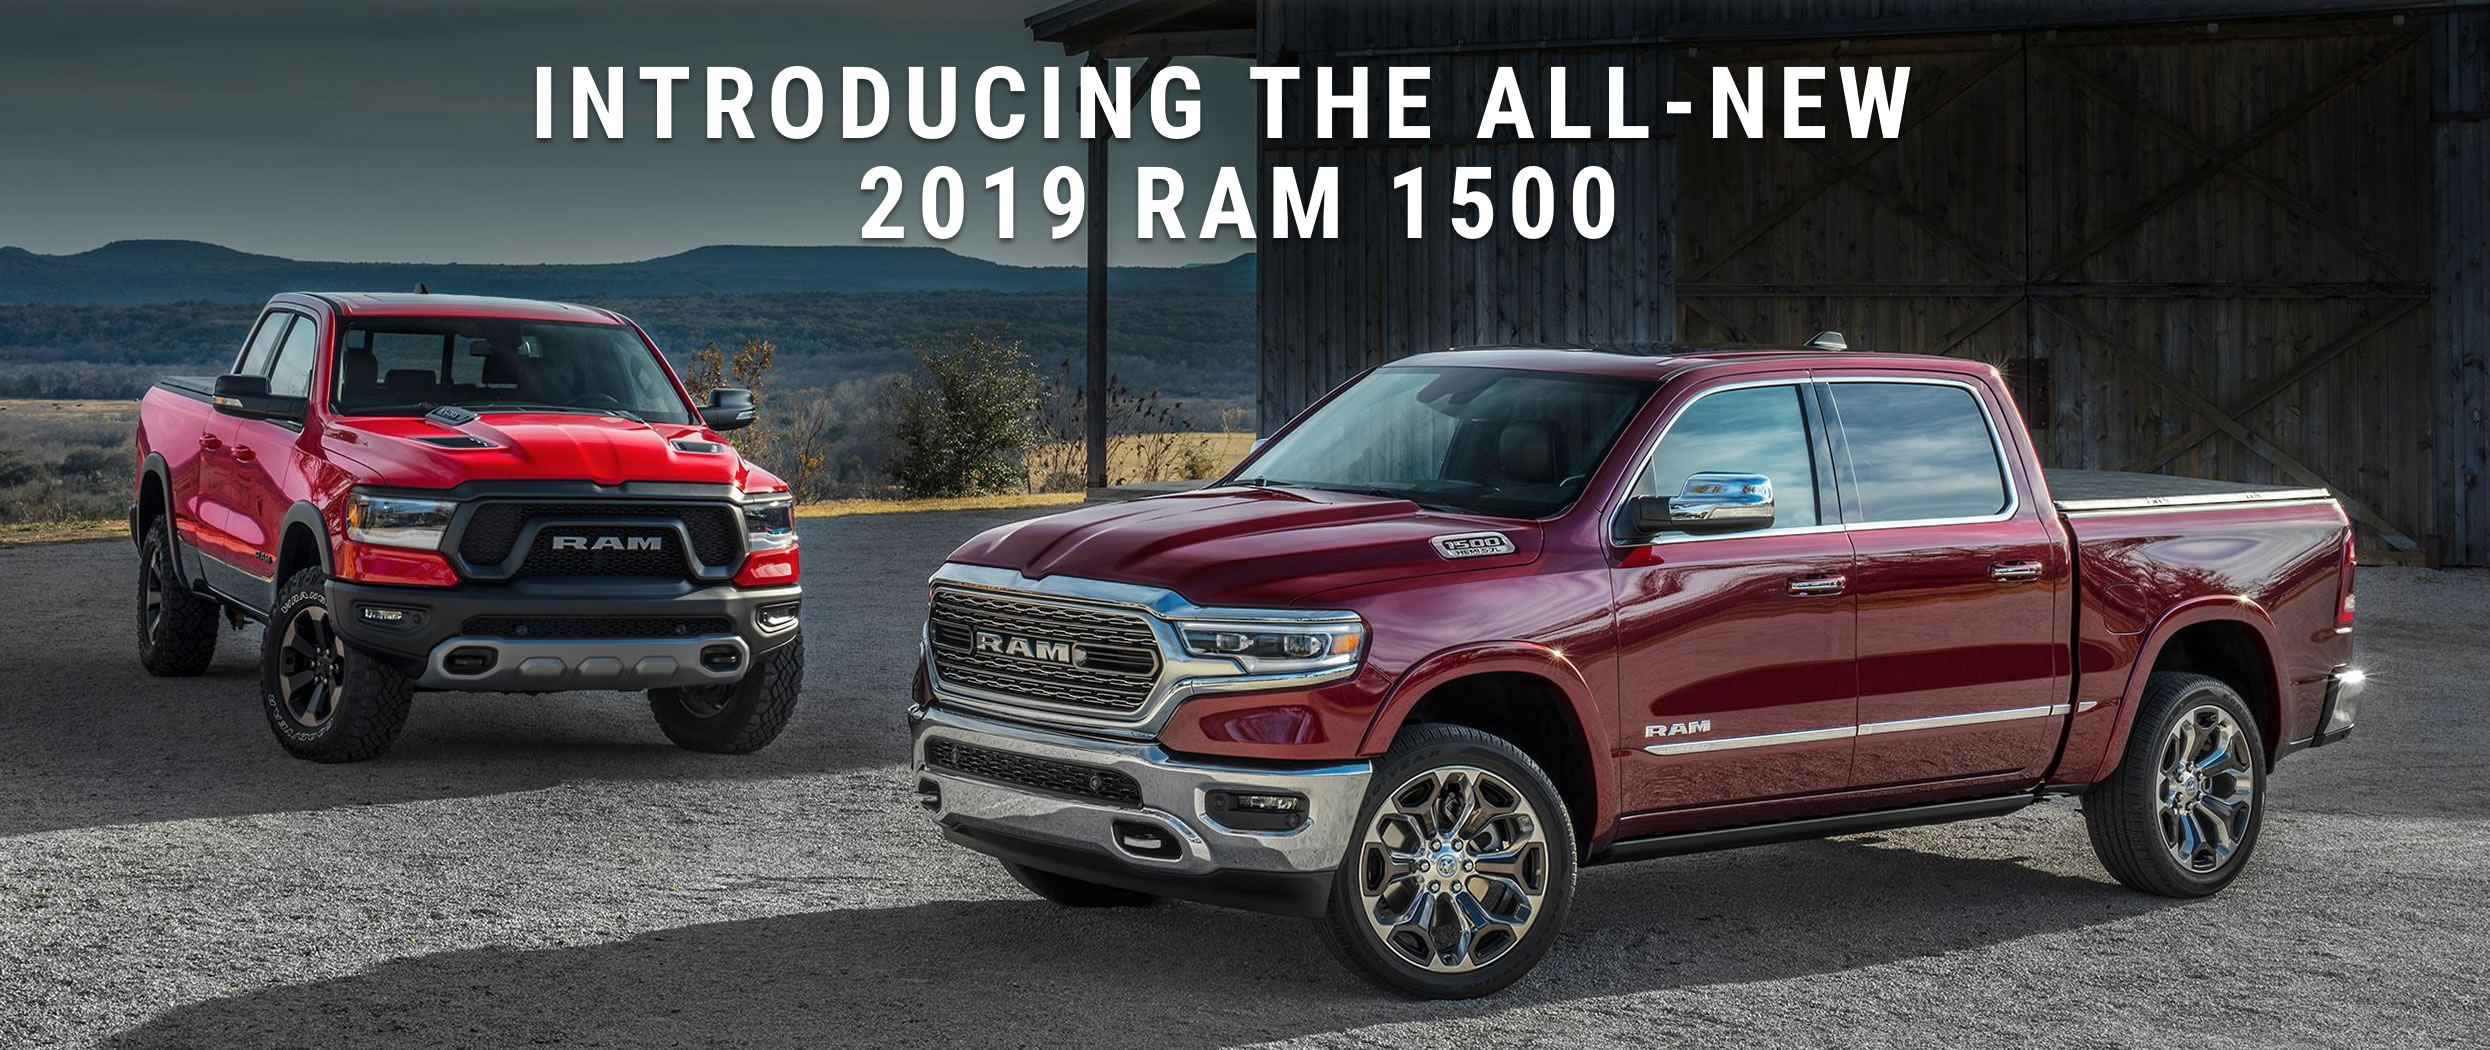 2019 Ram 1500 for sale in Edmonton All New for 2019